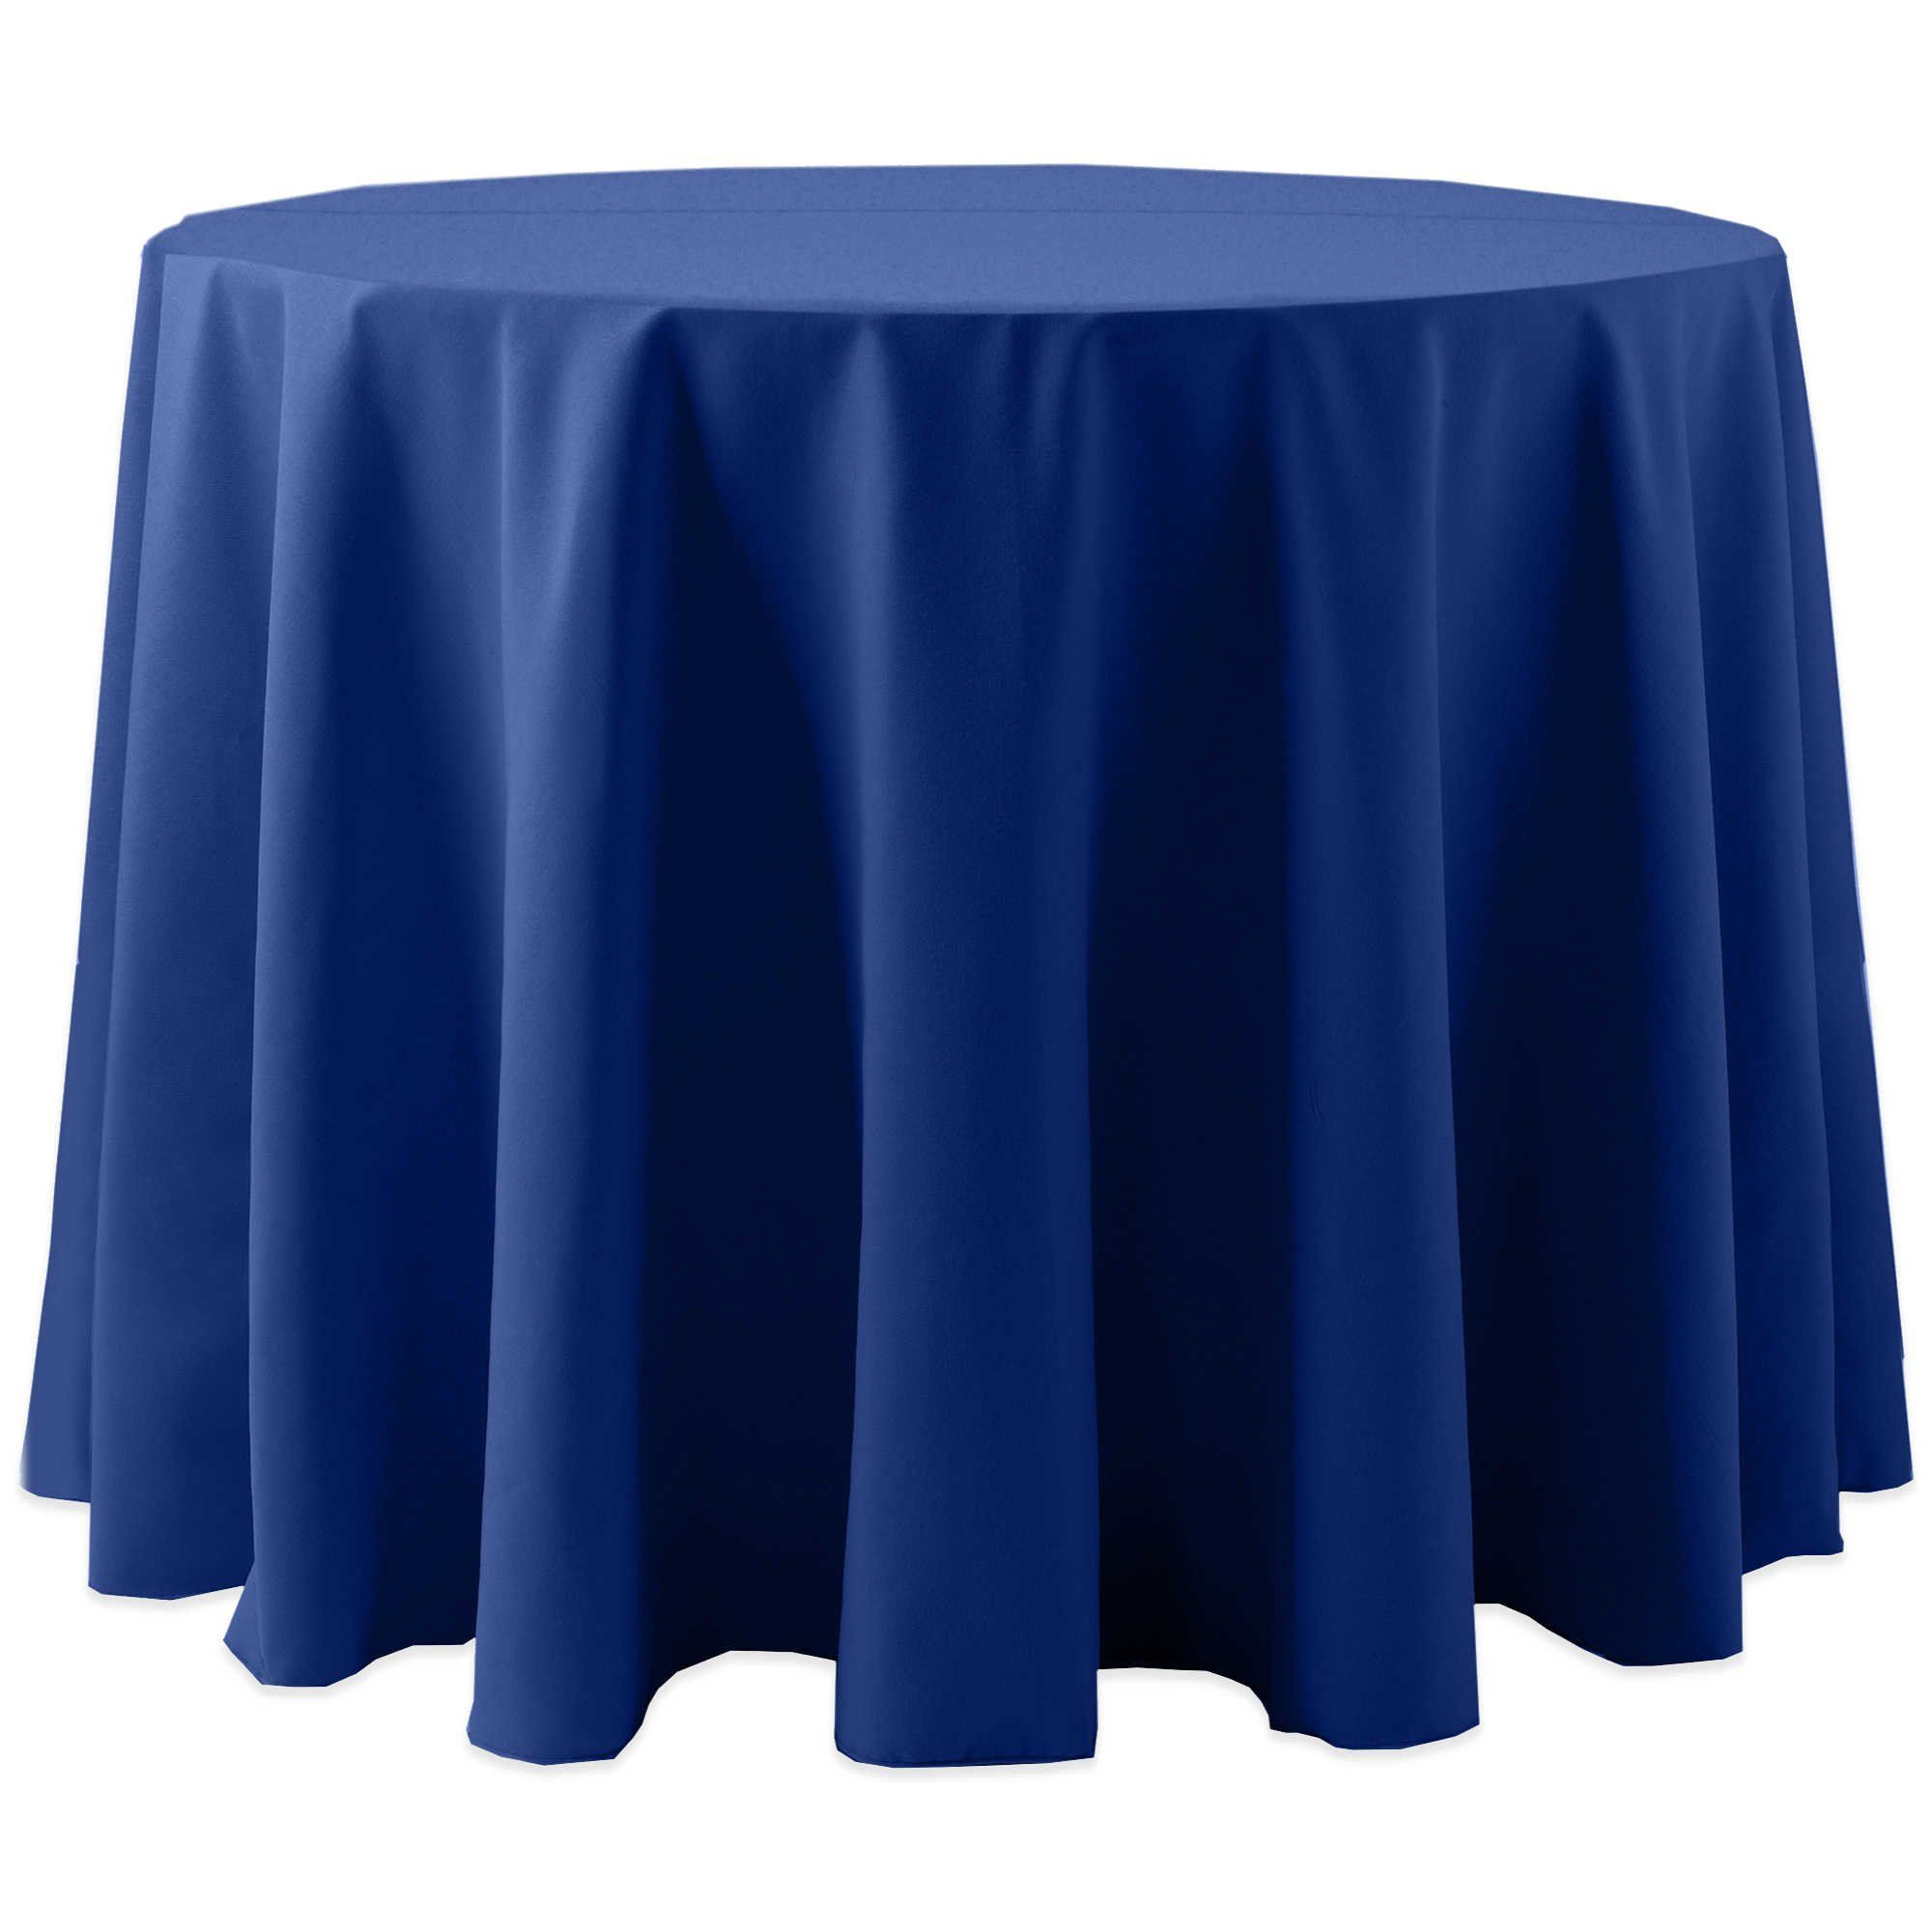 Ultimate Textile 3 Pack Cotton Feel Spun Polyester 90 Inch Round Tablecloth For Wedding And Banquet Hotel Or Home Fine Dining Use Royal Blue